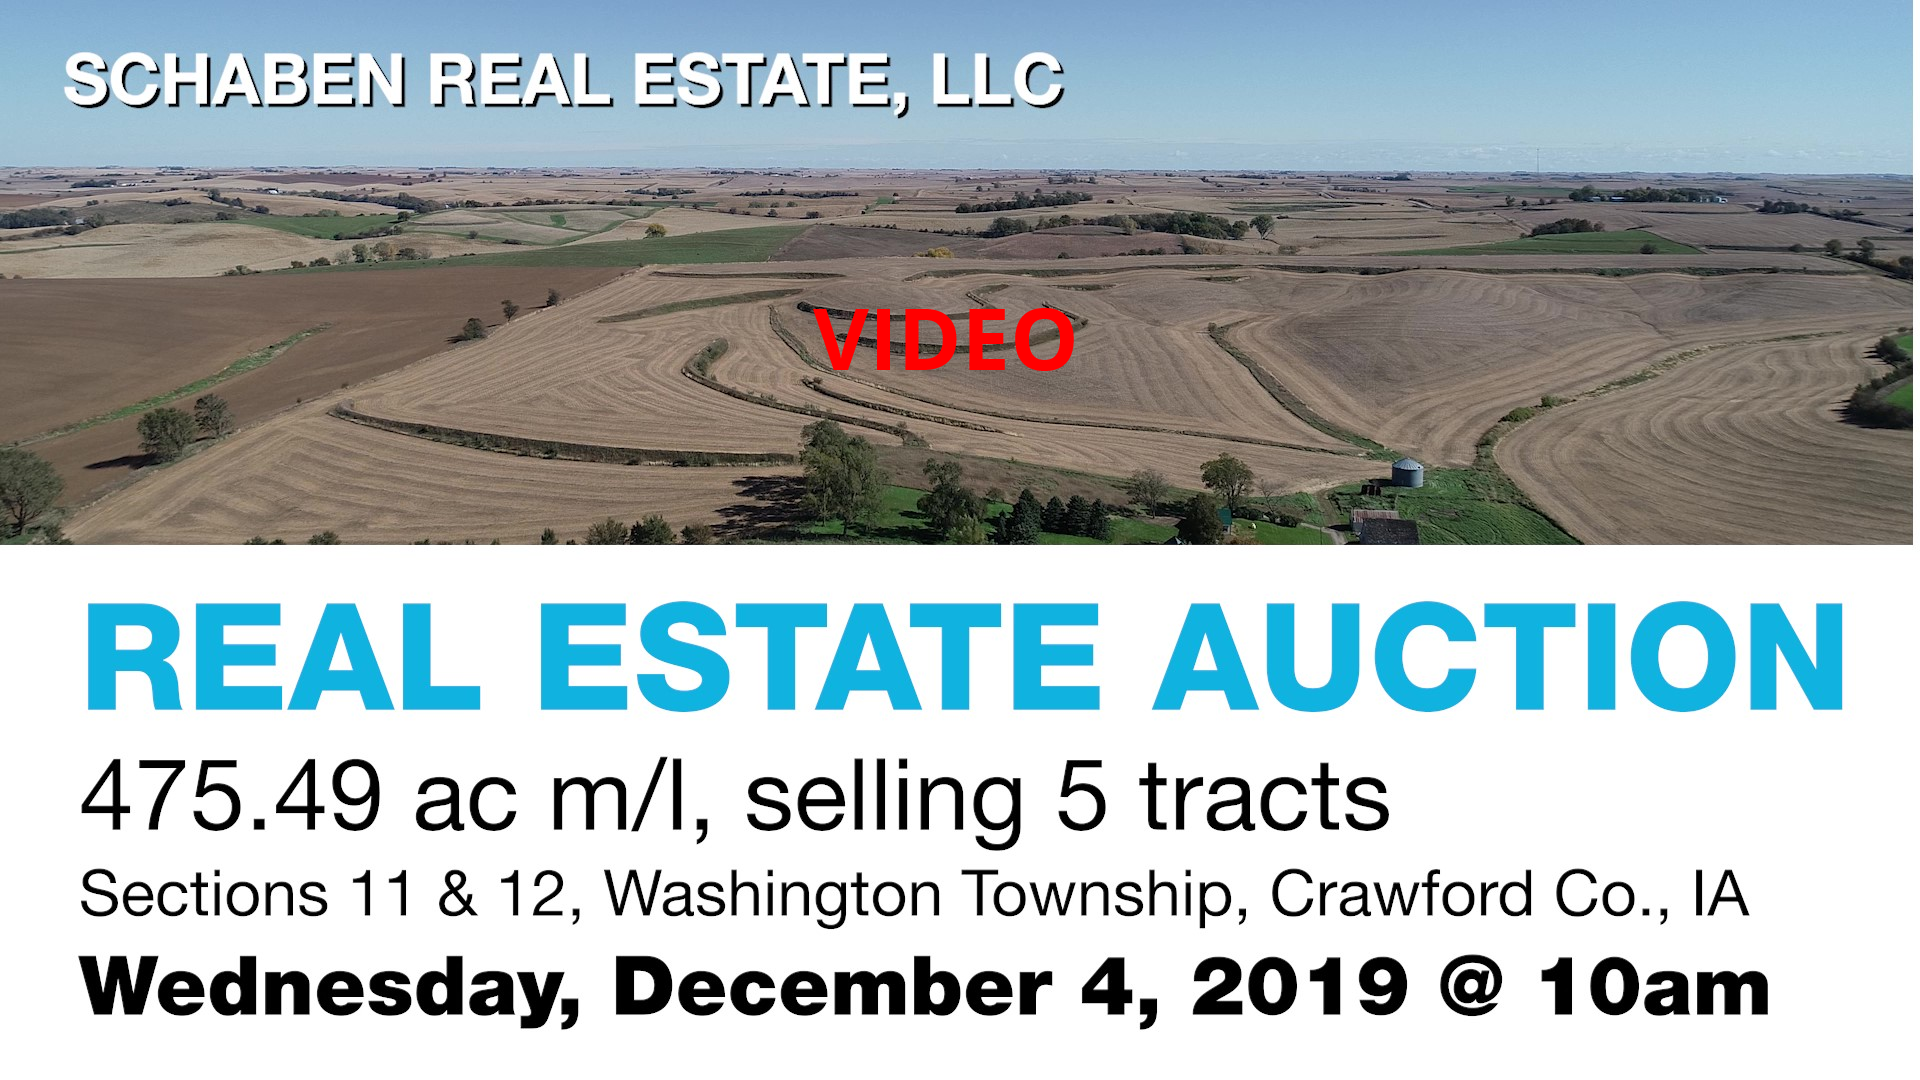 Click here for video of the Von Tersch Trust Real Estate Land, to be auctioned on Wed, December 4th, 2019